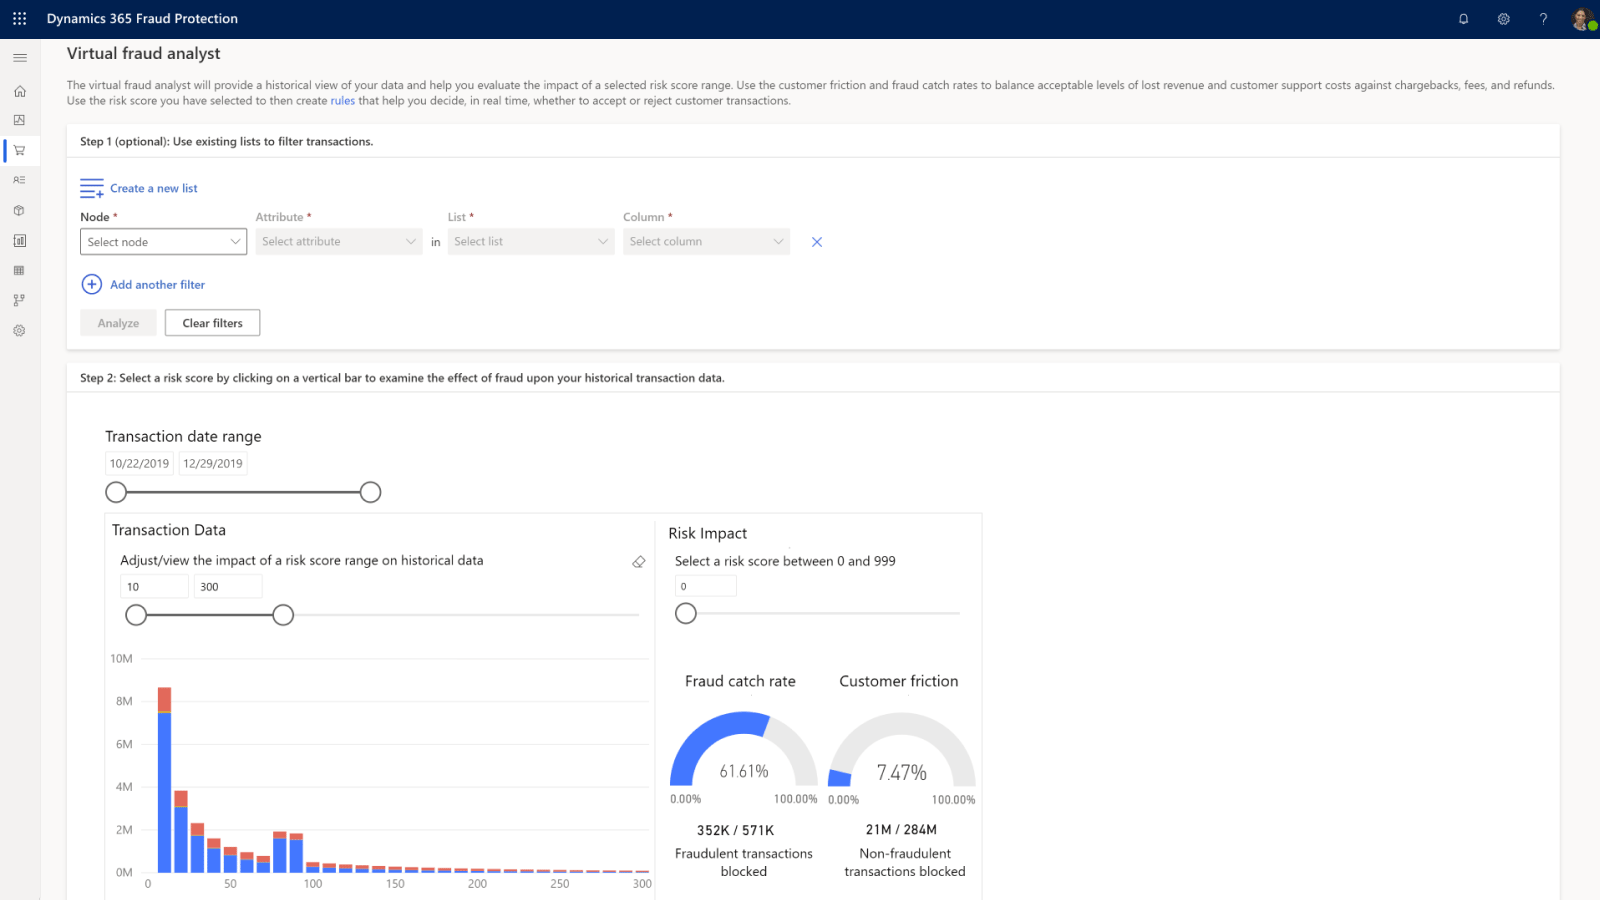 Dynamics 365 Fraud Protection 視覺化